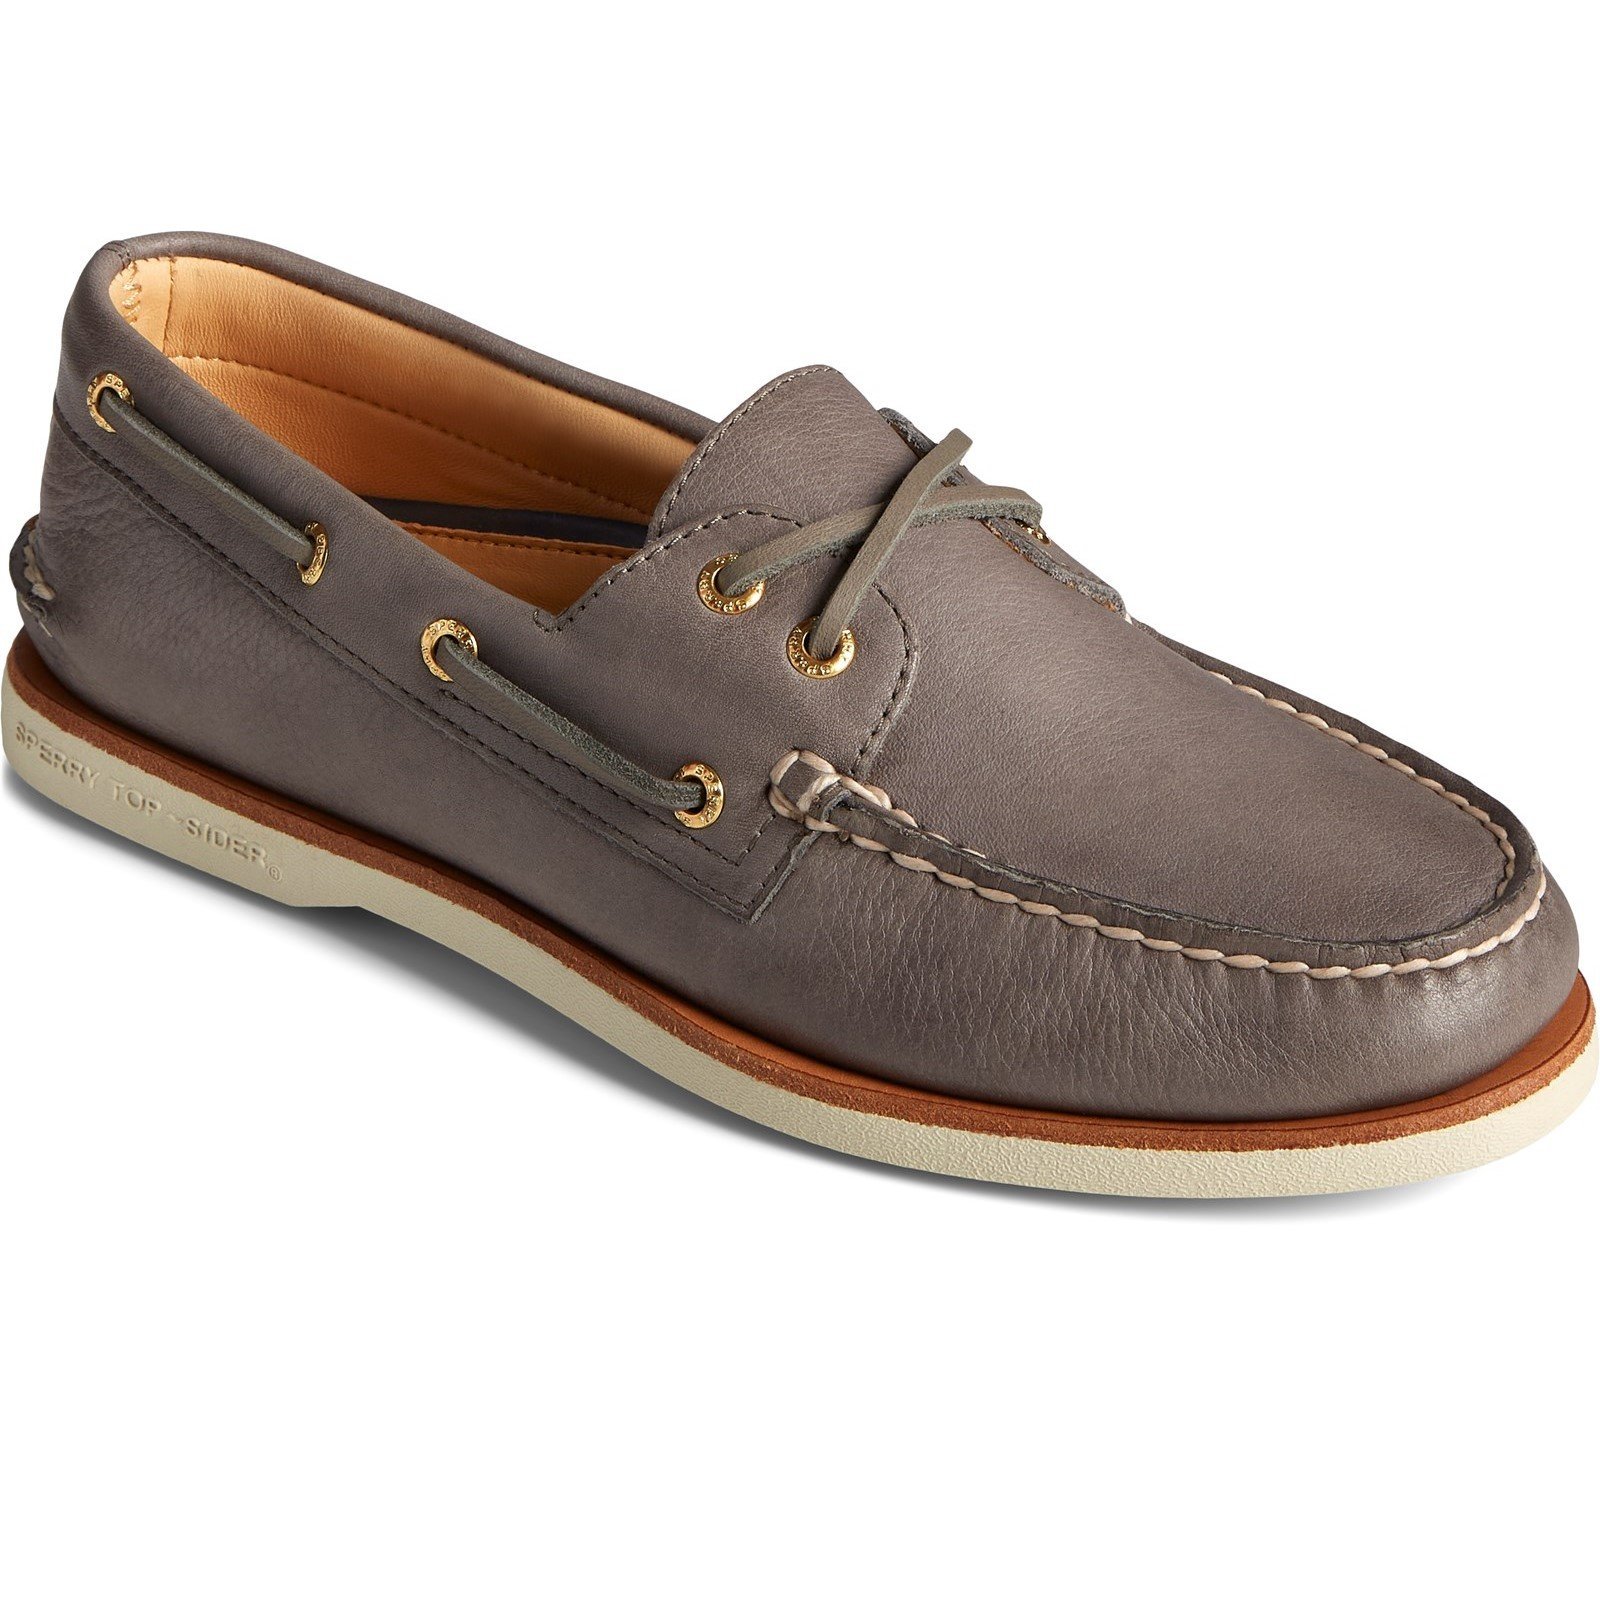 Sperry Men's A/O 2-Eye Boat Shoe Various Colours 32926 - Charcoal 9.5